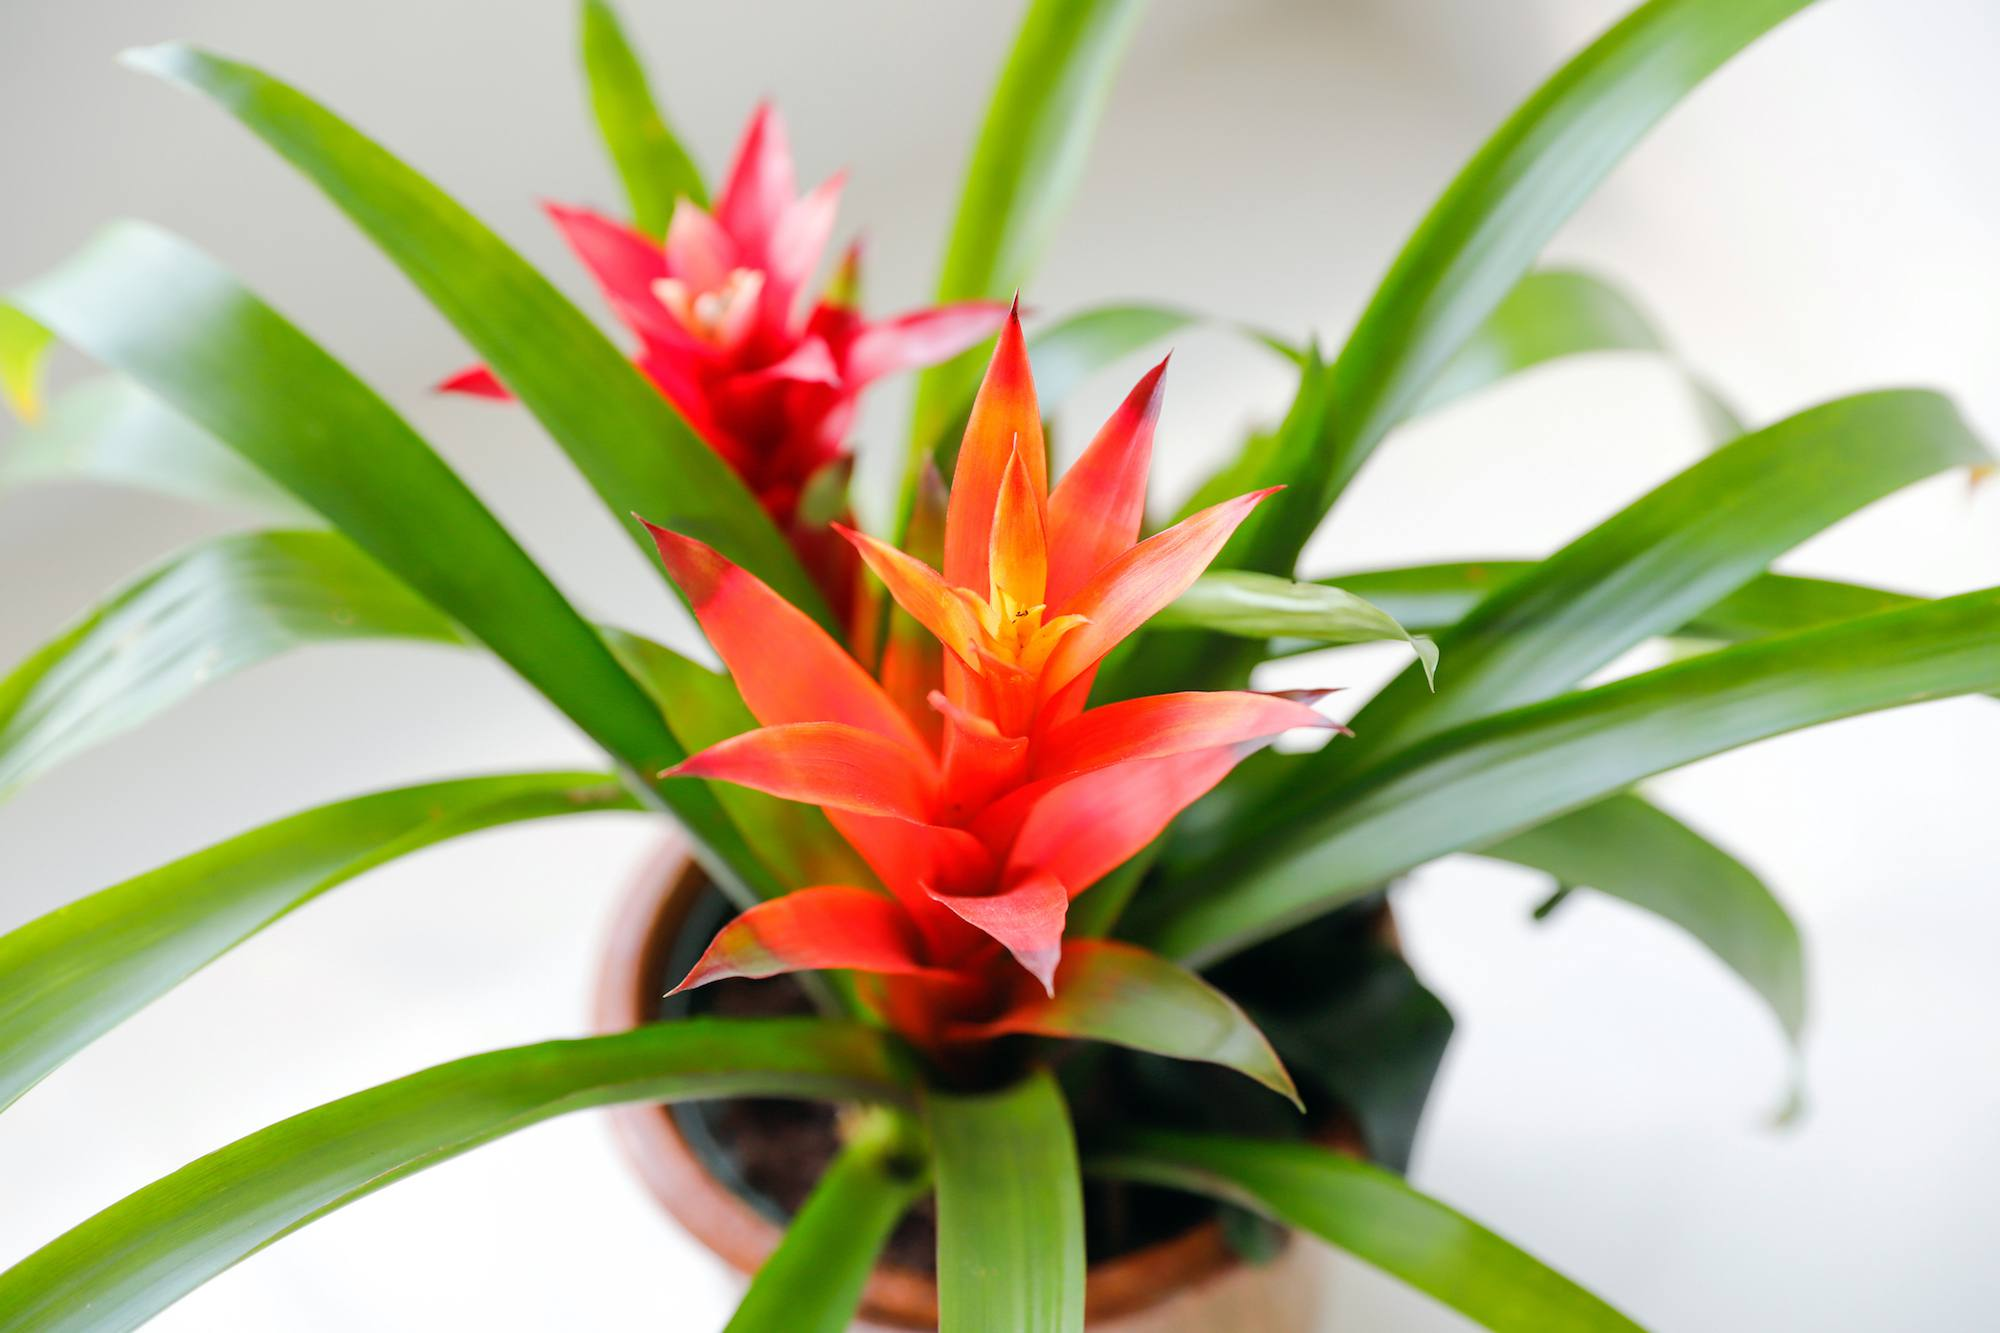 House Plants - Bromeliads - The Spruce